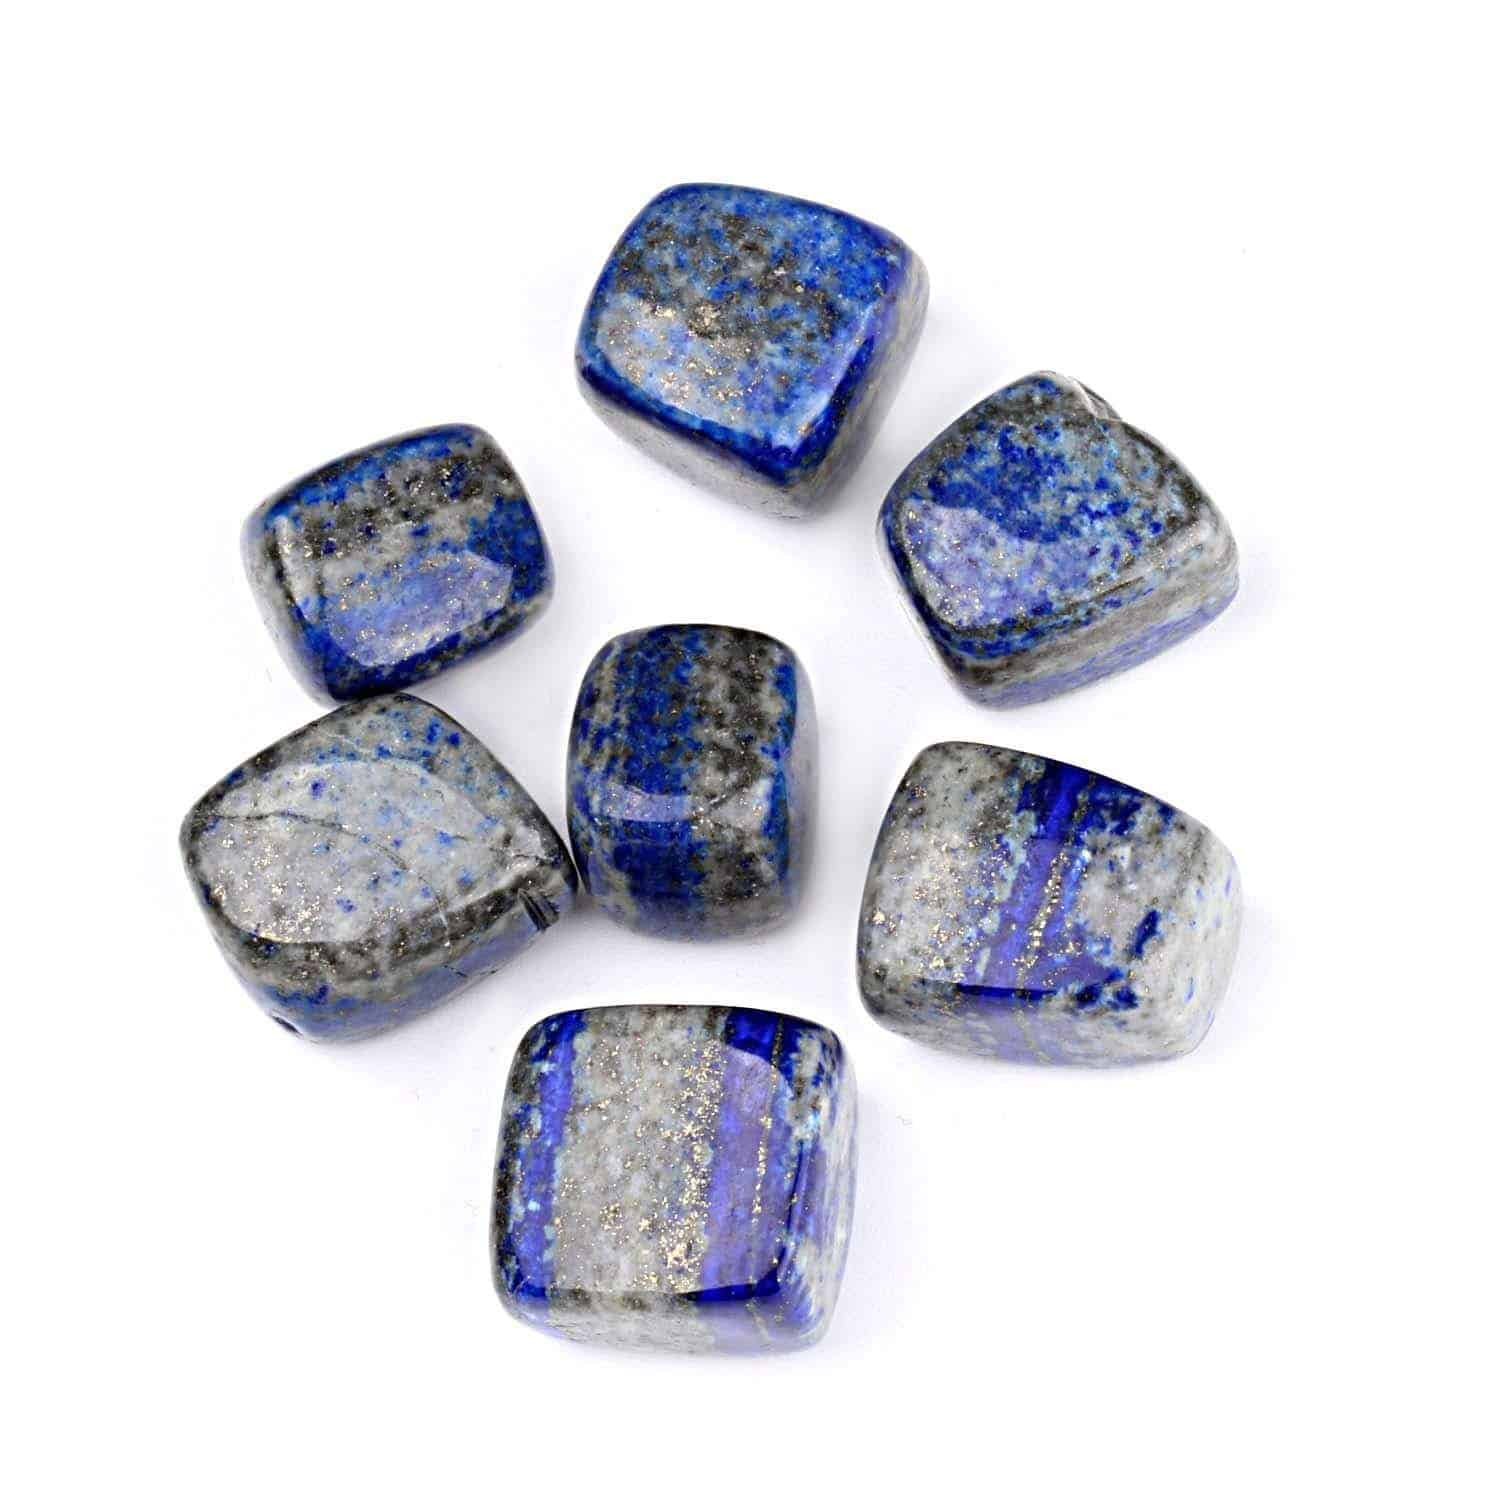 Lapis Lazuli - Crystals that Enhance Psychic Ability